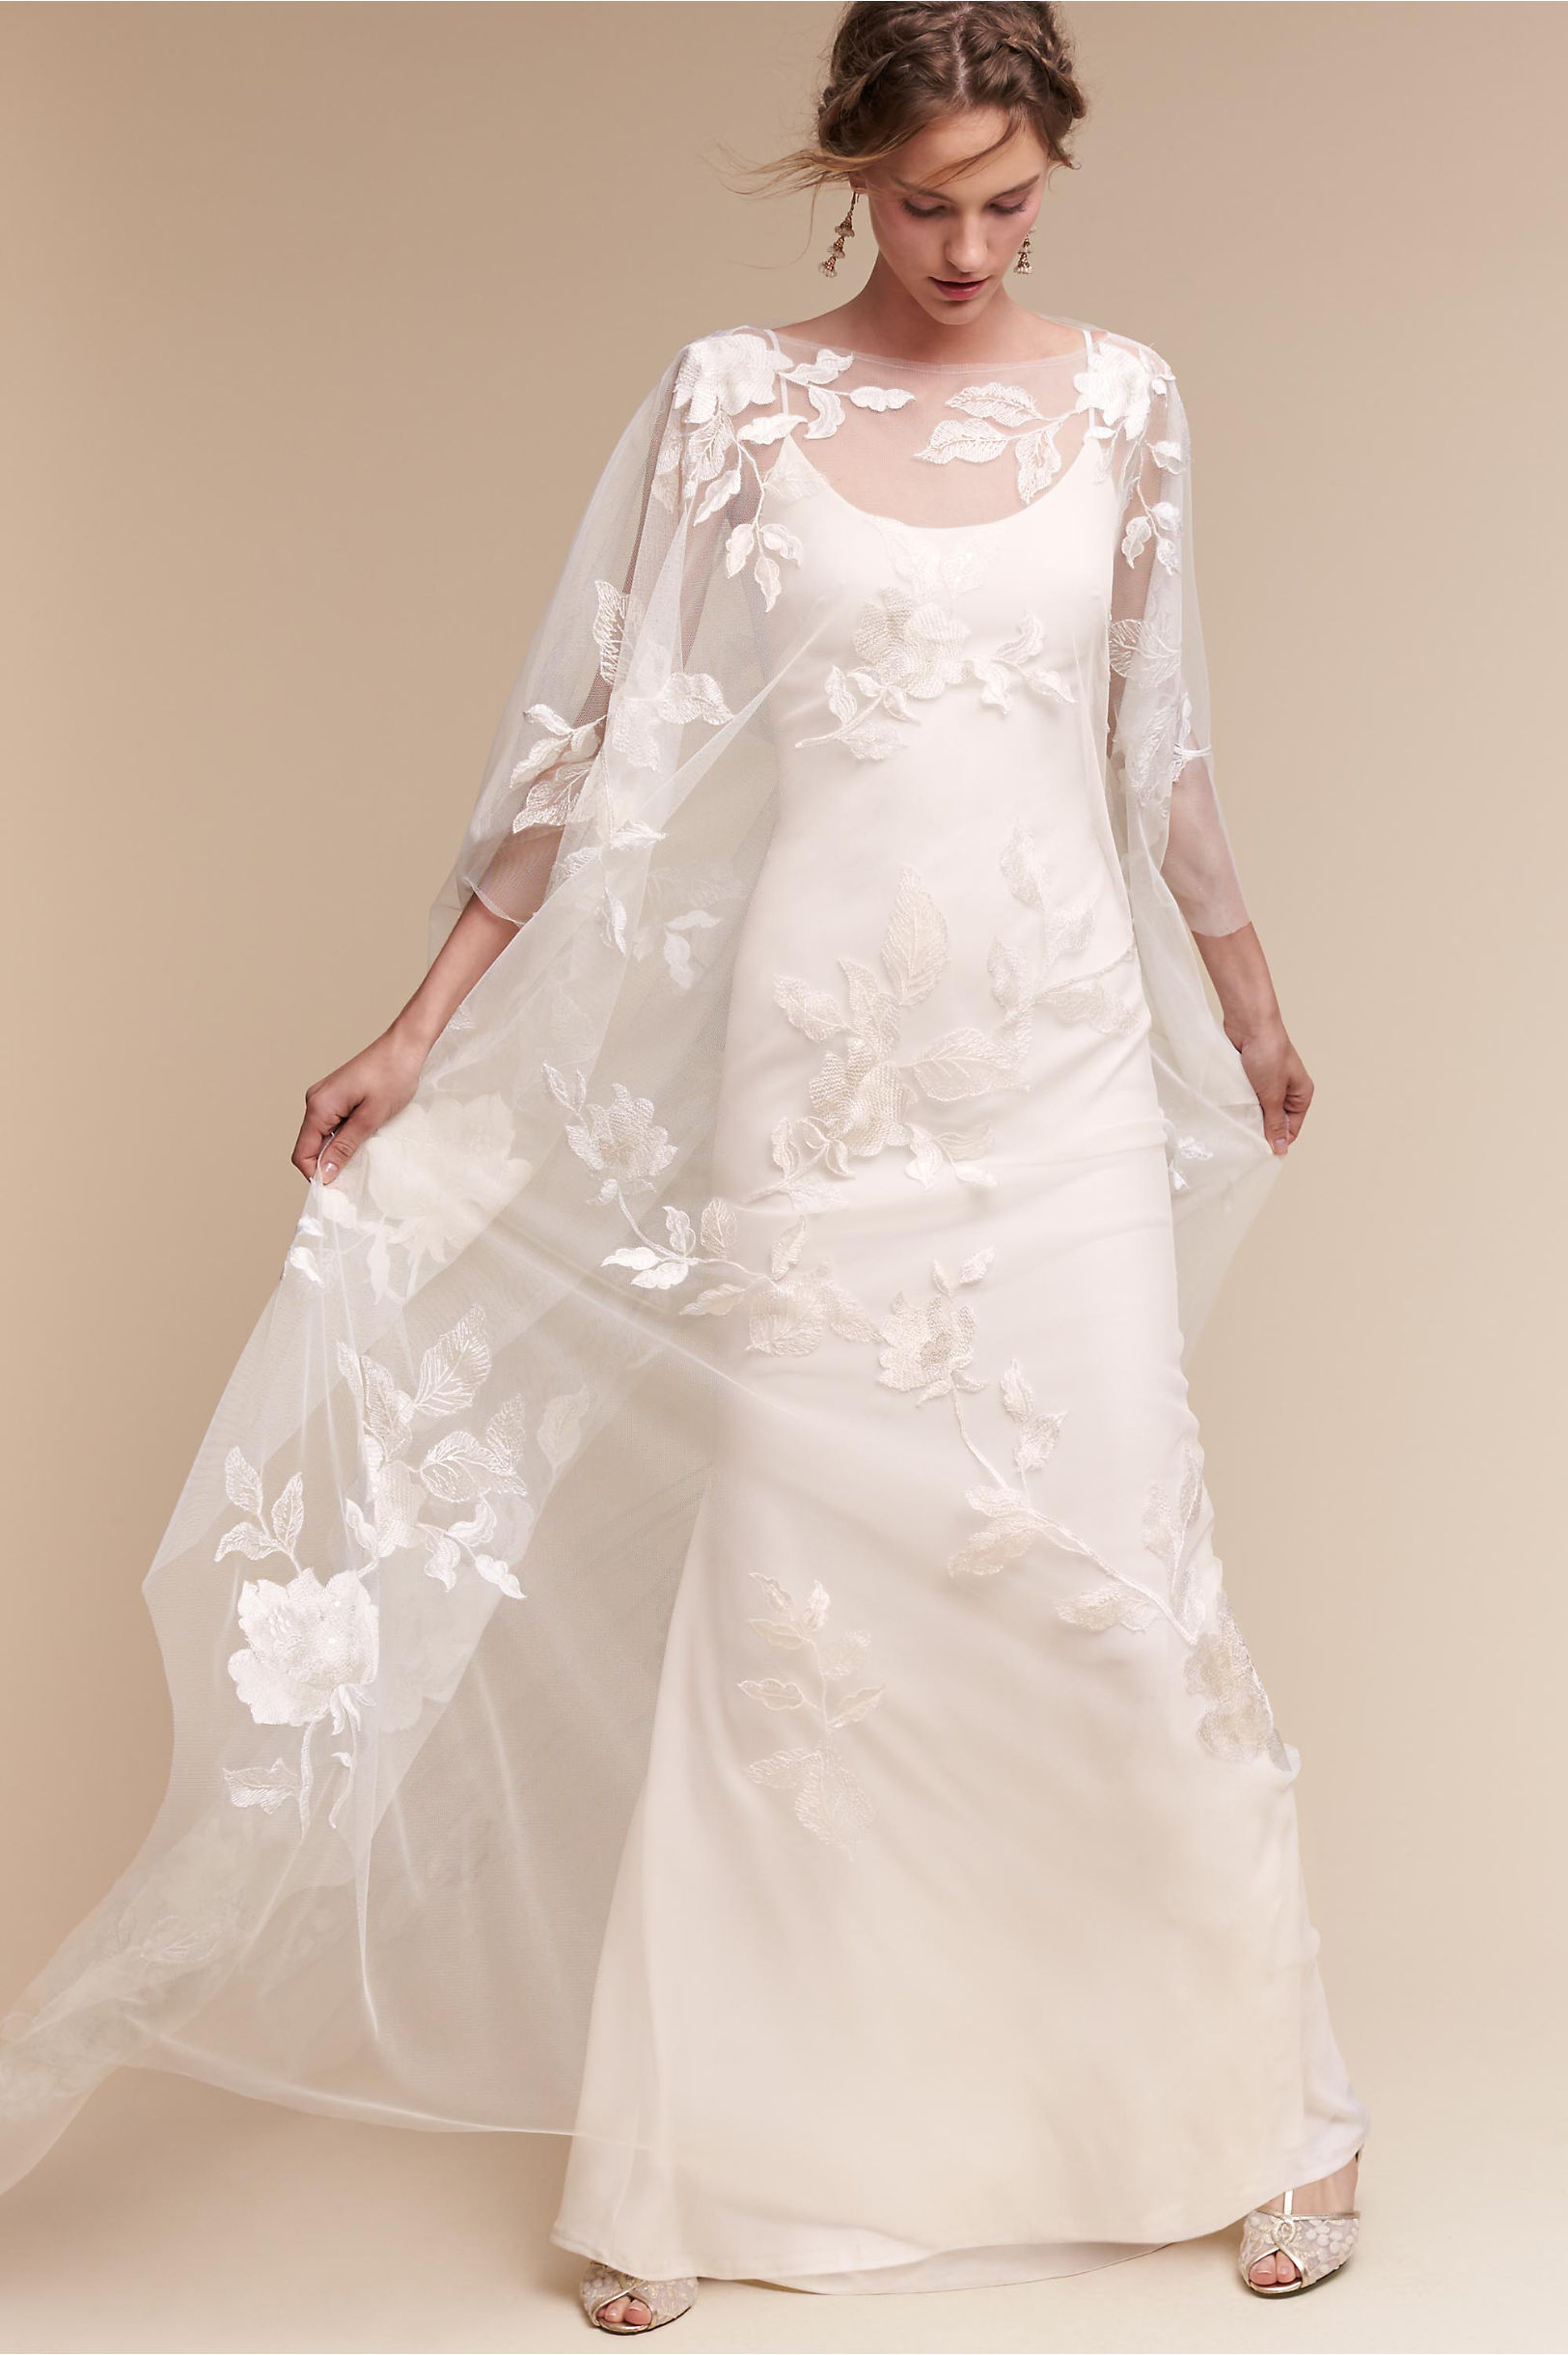 rhiannon cape monroe gown wedding dress with cape Rhiannon Cape Monroe Gown BHLDN